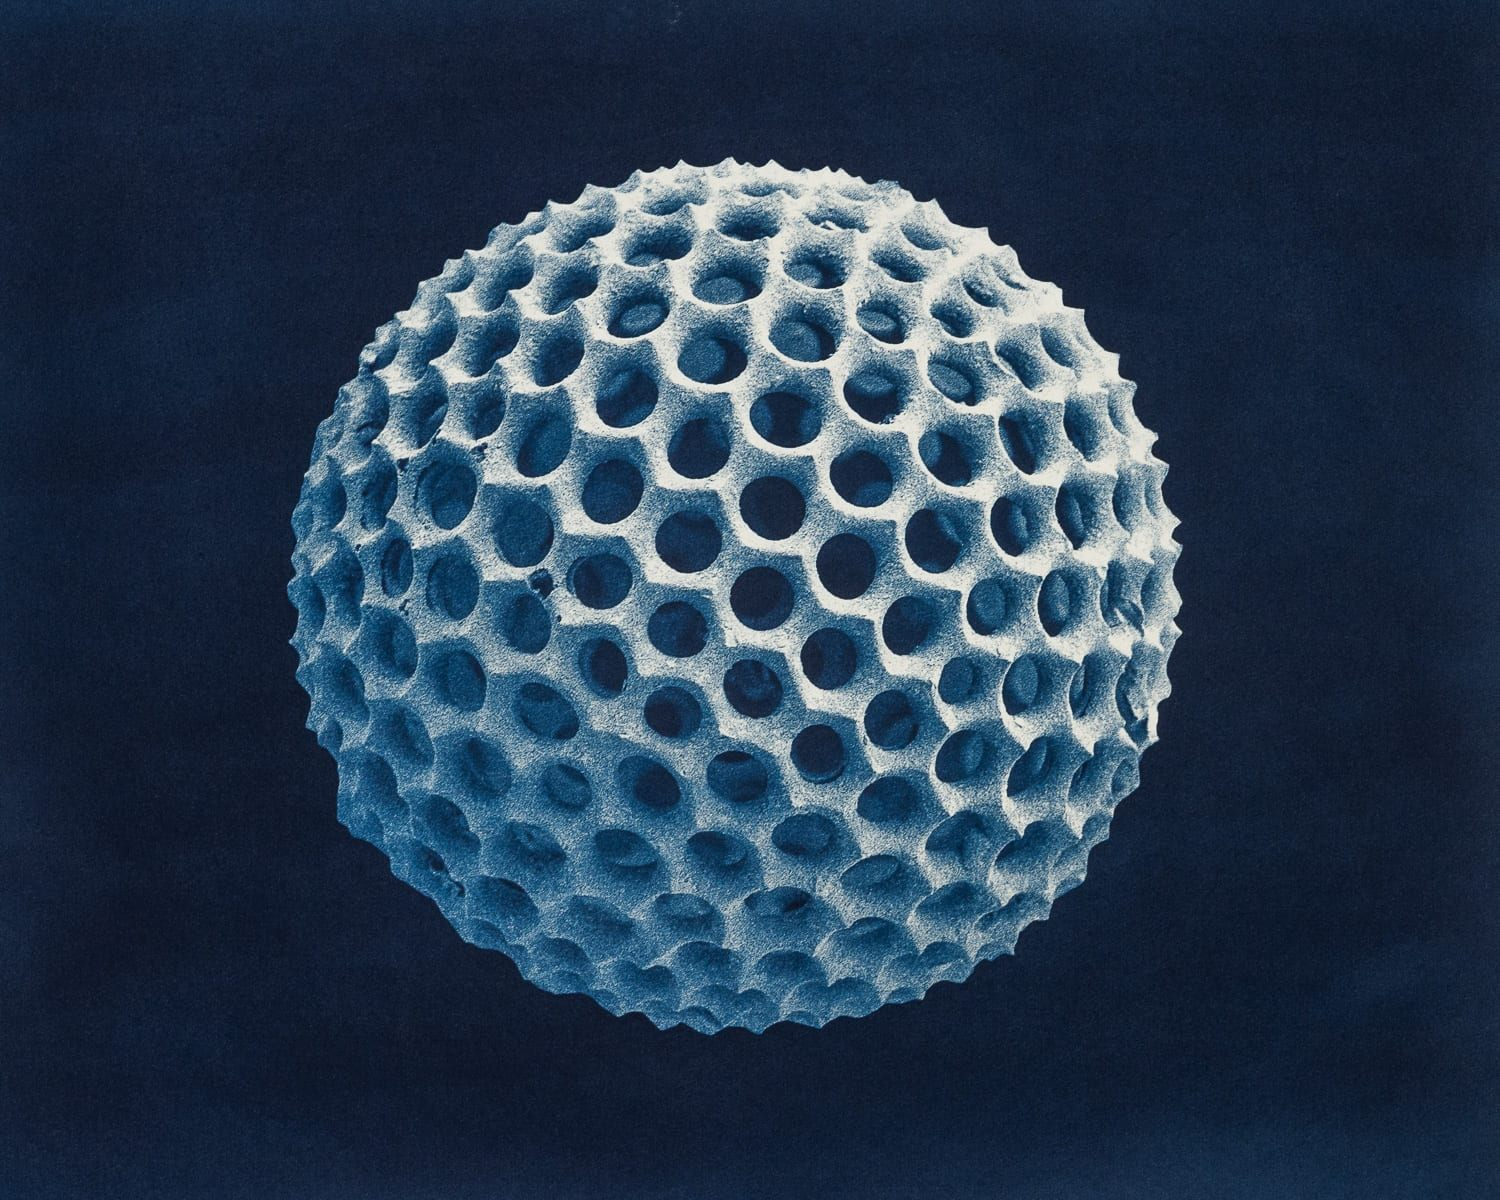 """Radiolaria I,"" 2019. Cyanotype from a scanning electron microscope"